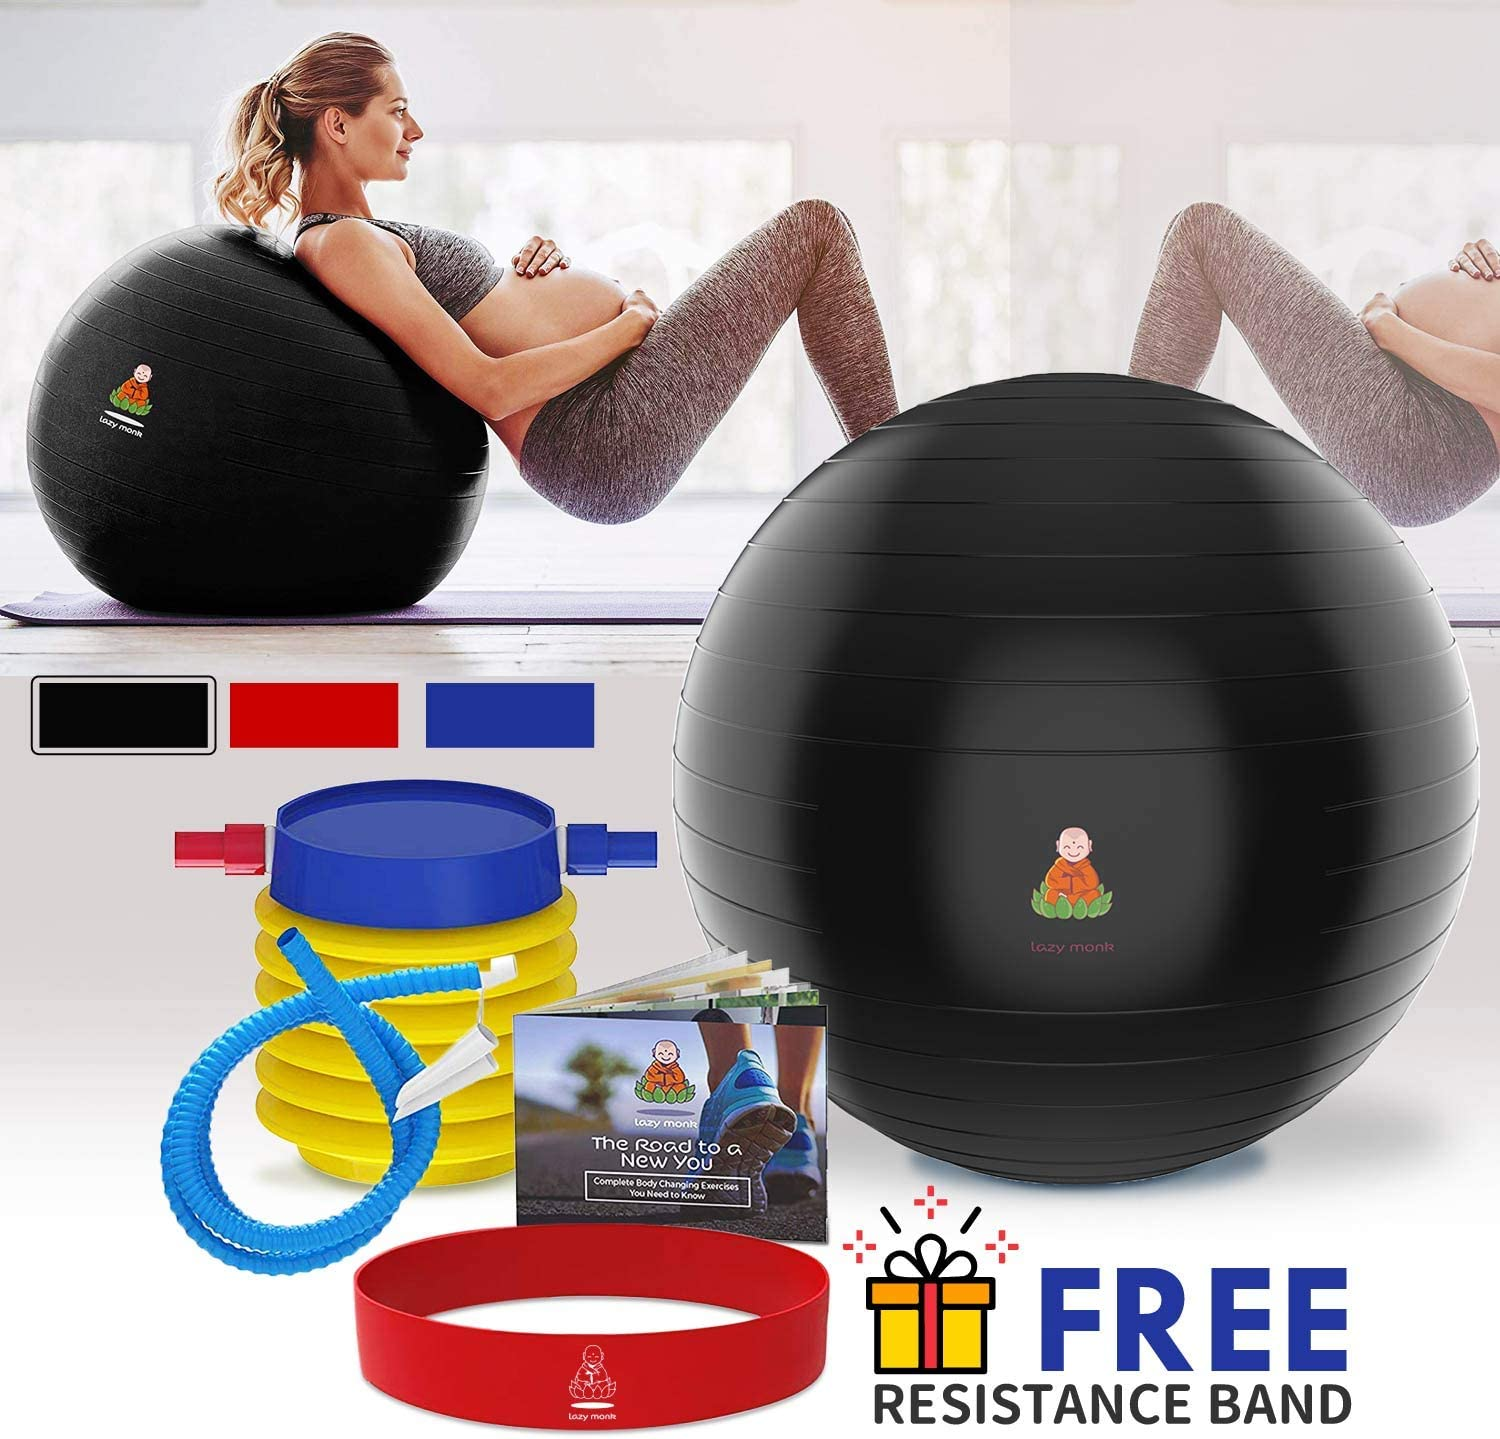 Lazy Monk Exercise Ball, Fitness Workout Chair Pregnancy Ball Anti-Burst Yoga Pilates Large Balance Gym Ball w Pump, Extra Pin Excersize Gym Swiss Ball, Elastic Loop Hard Cover Workout Guide